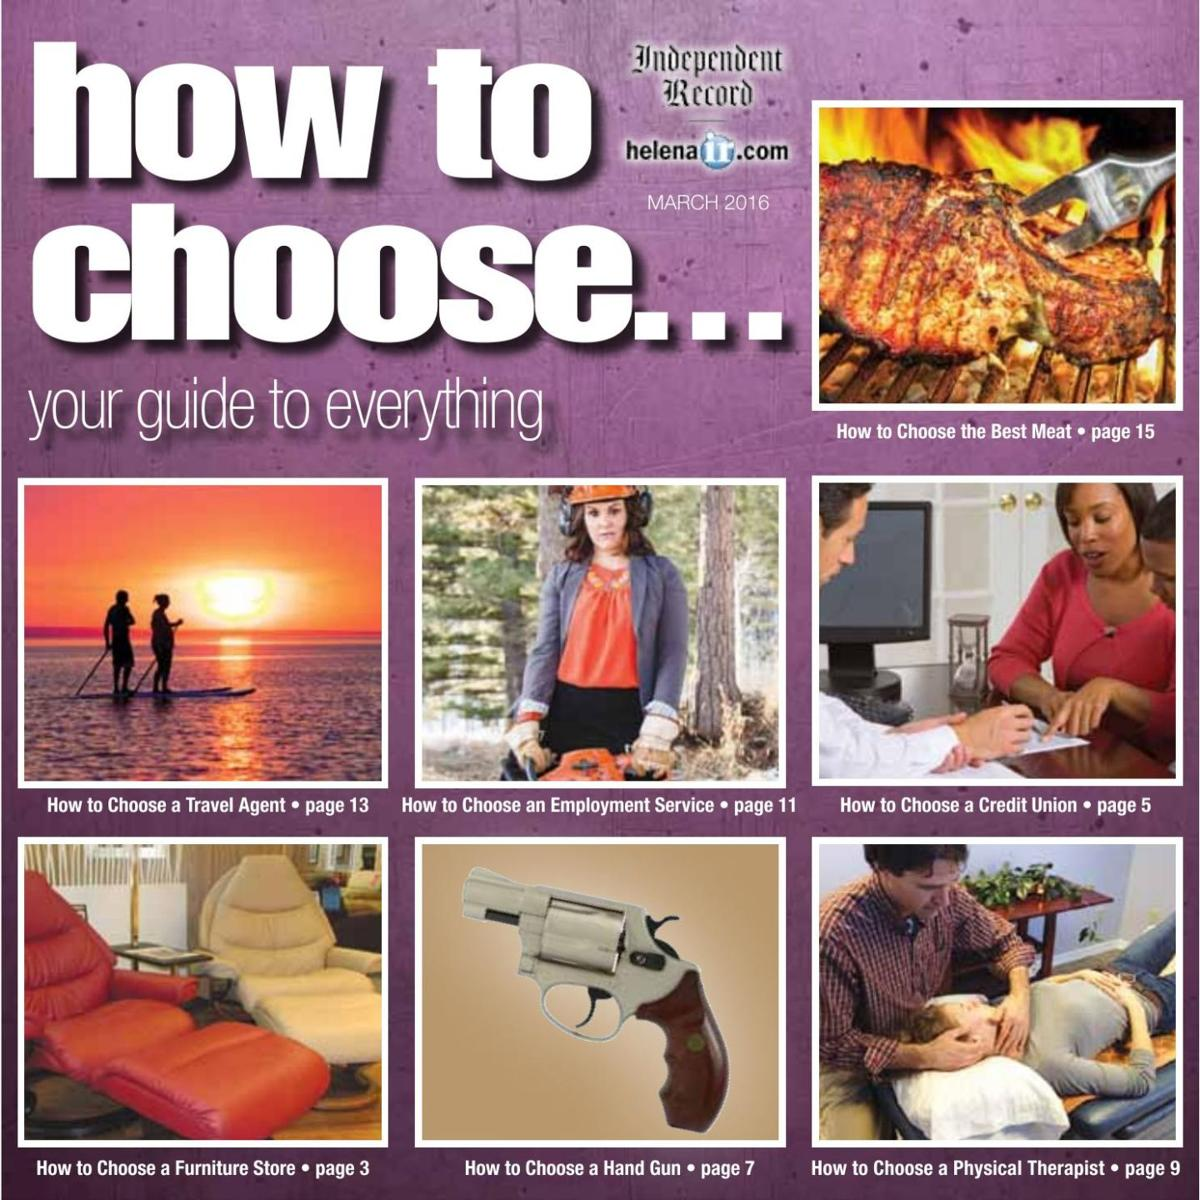 How to choose | March 2016